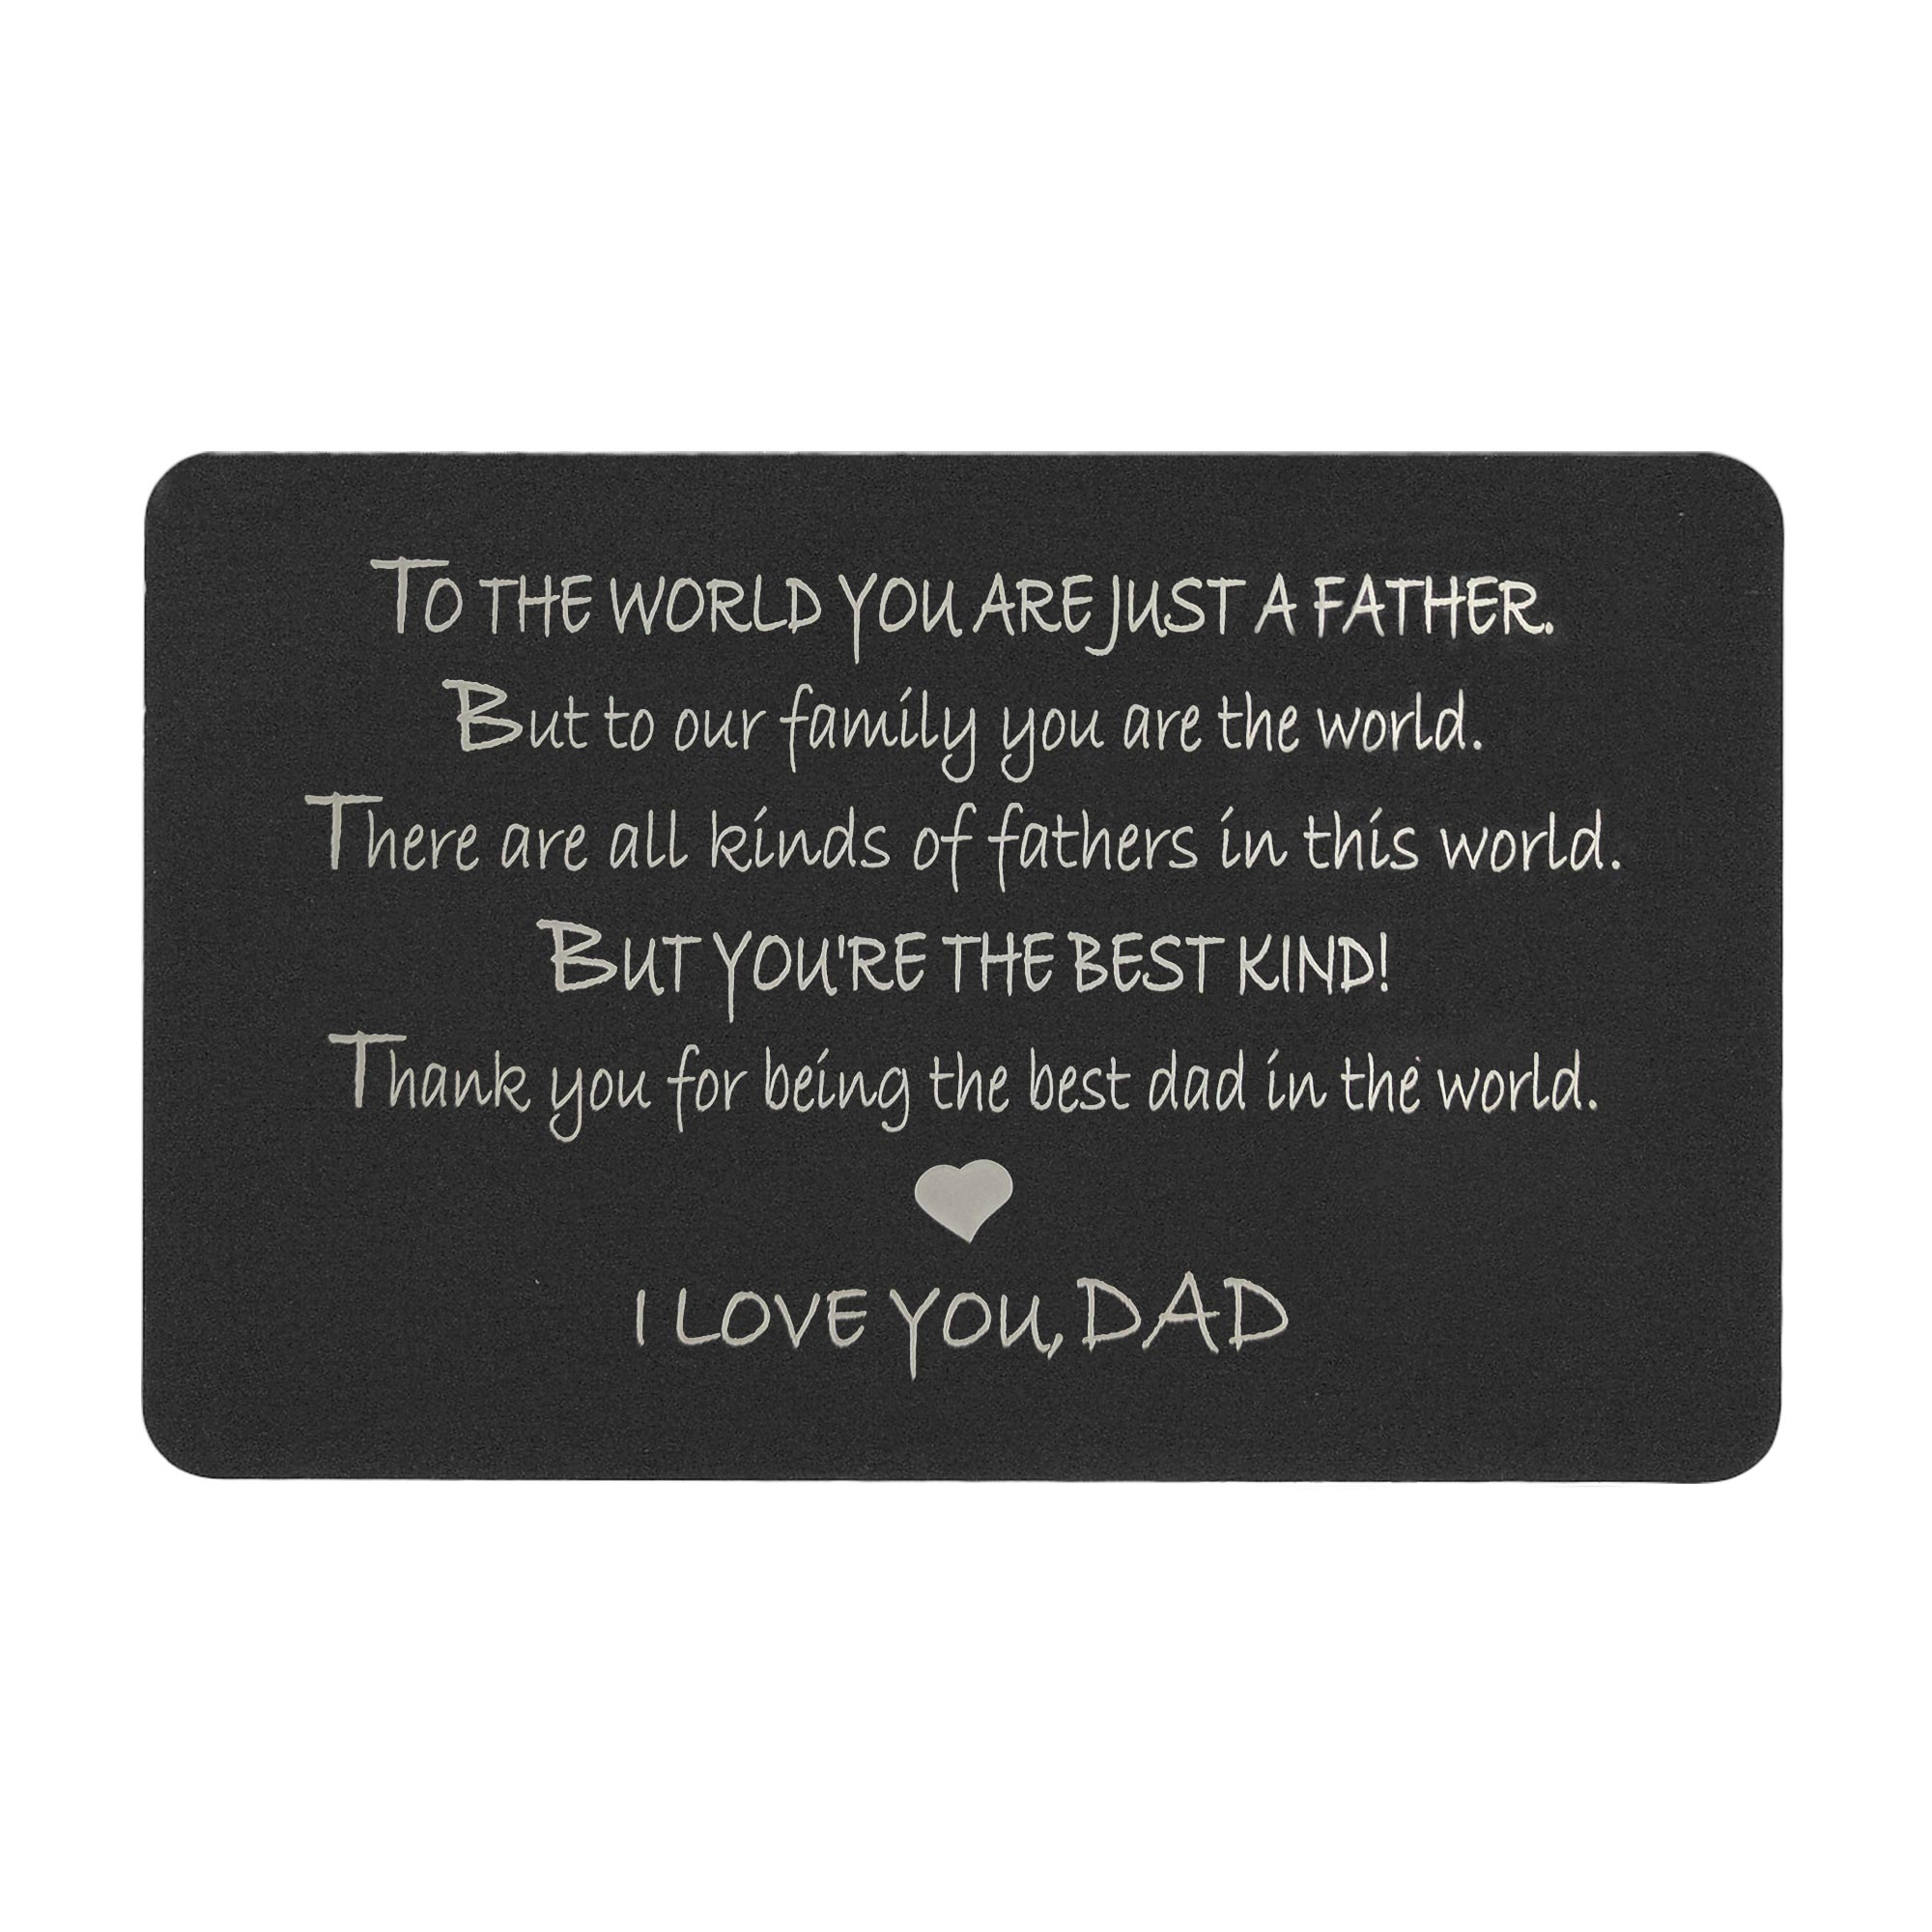 "Anodized Aluminum Black Engraved Wallet Insert Father ""I Love You Dad\"" Mini Love Gift Note Card"